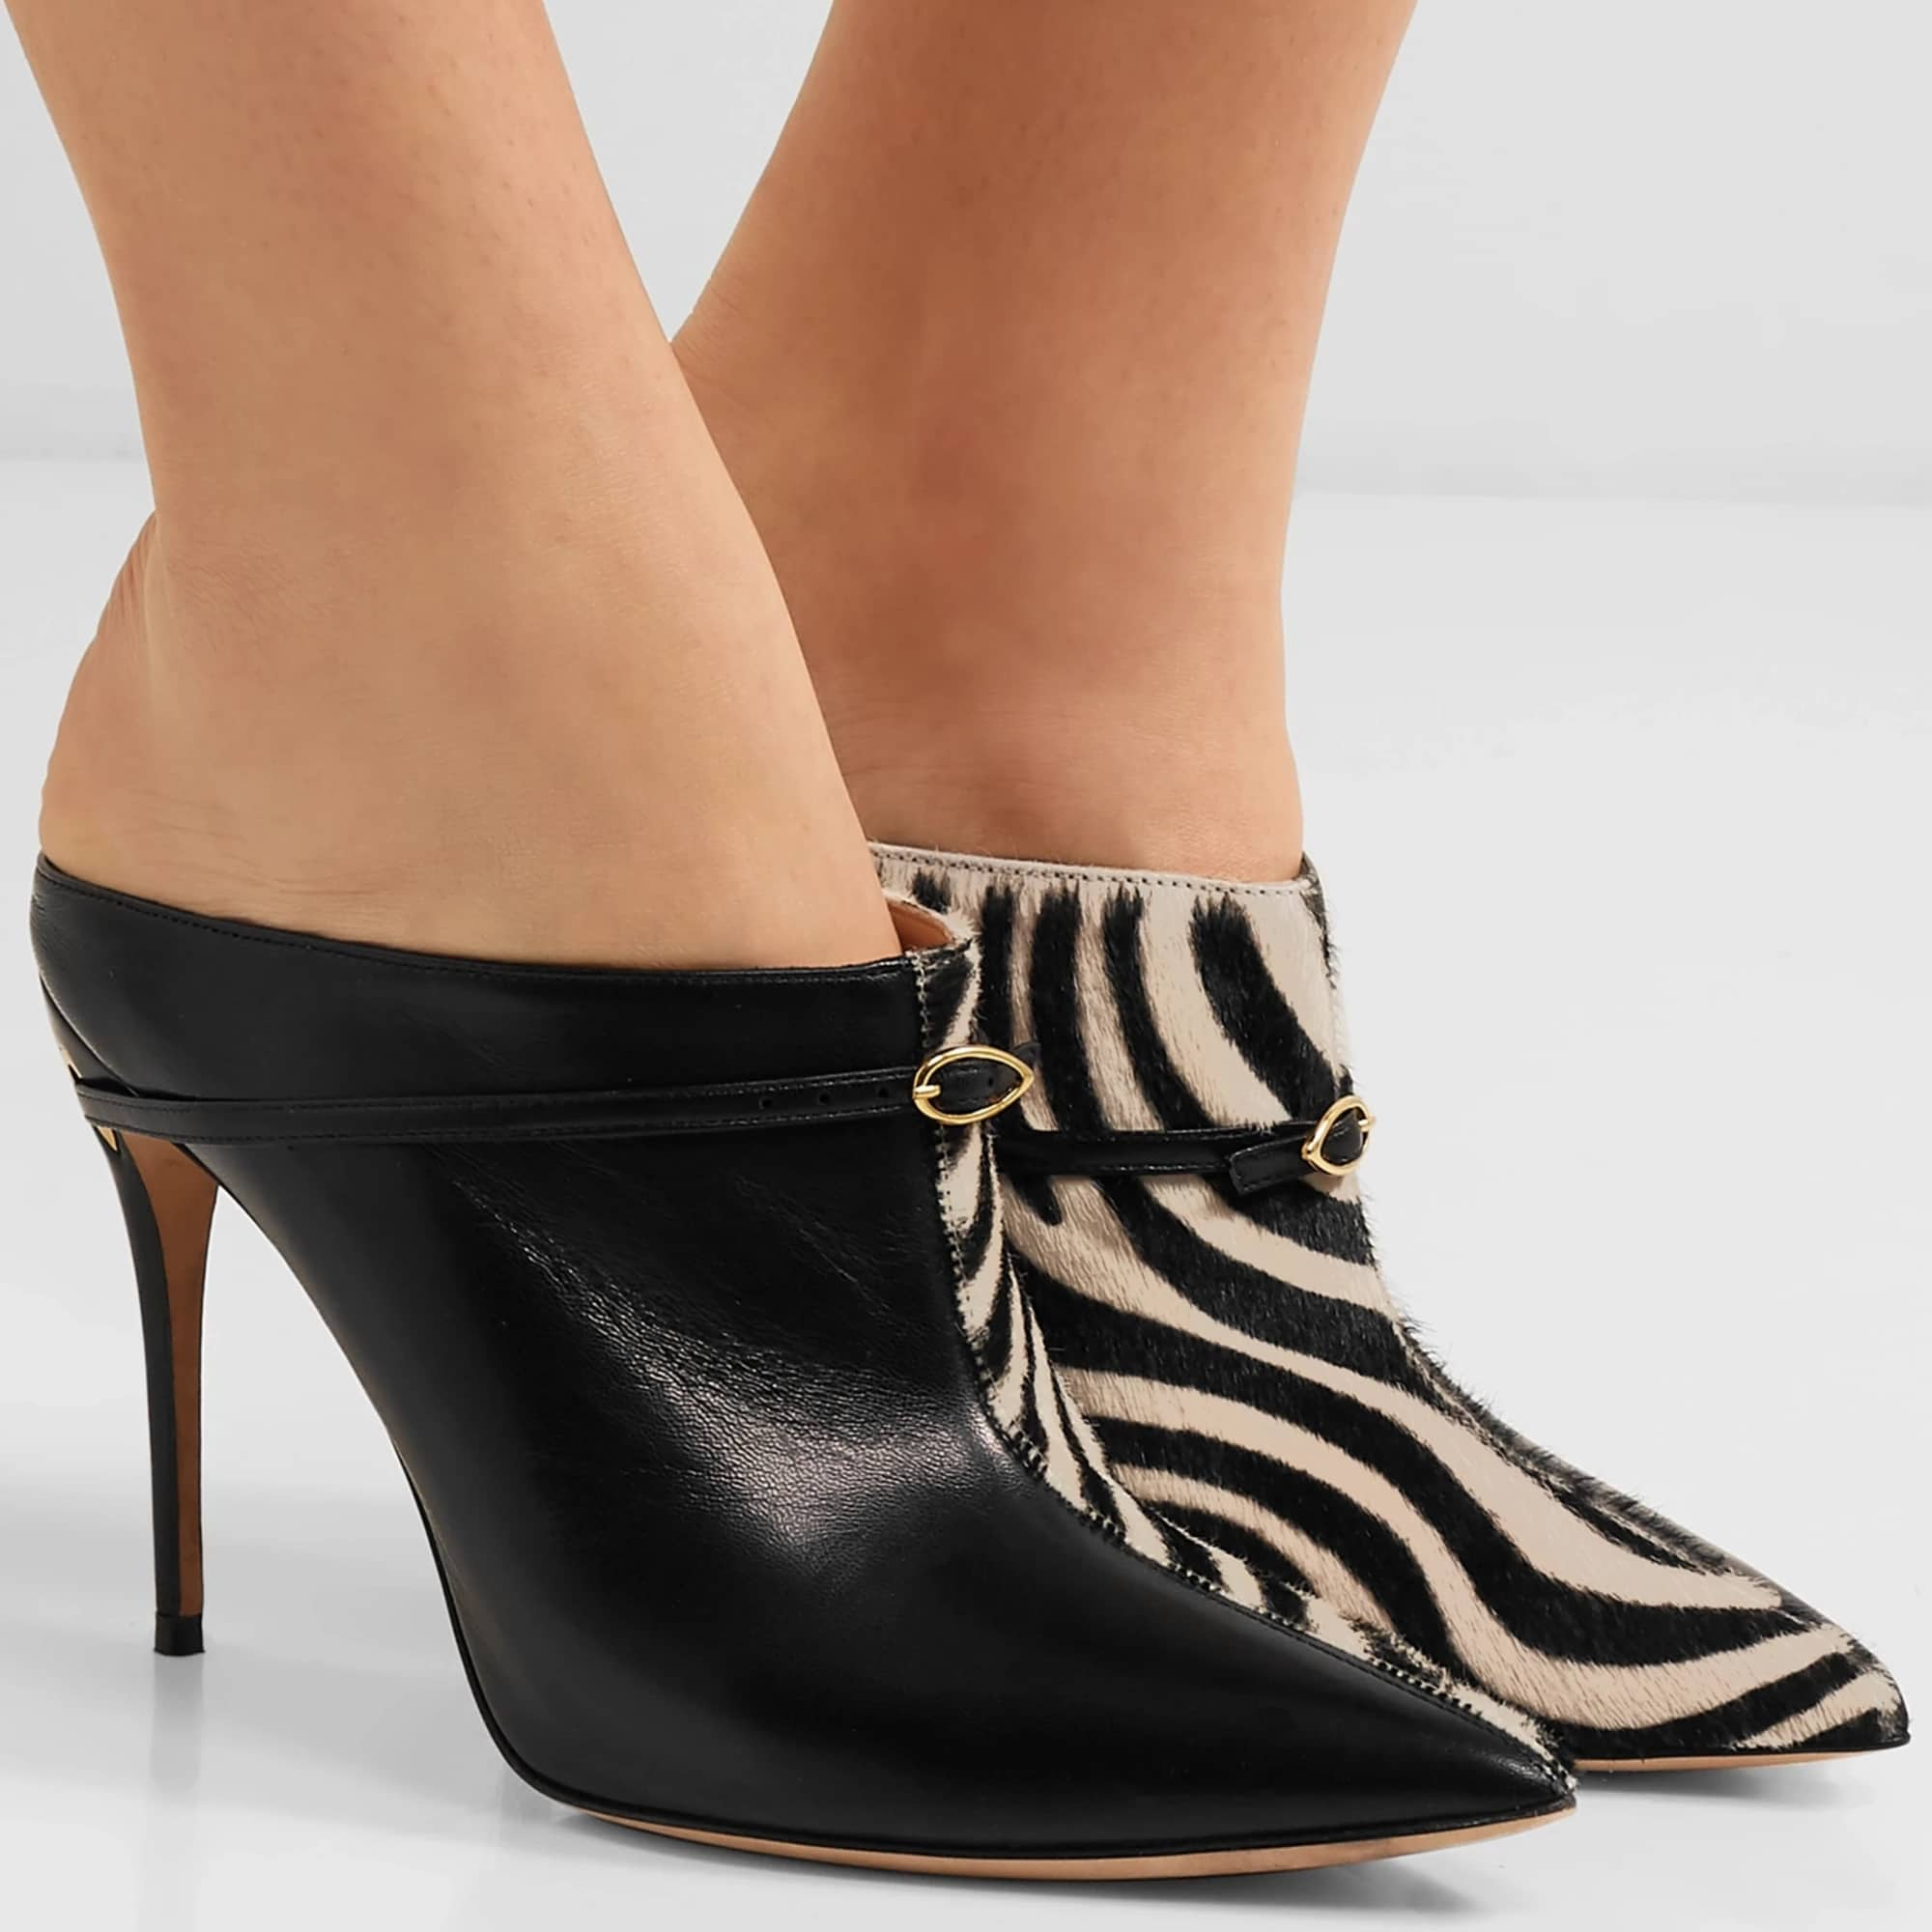 Made in Italy from zebra-print calf hair and smooth black leather, these mules are detailed with polished gold hardware